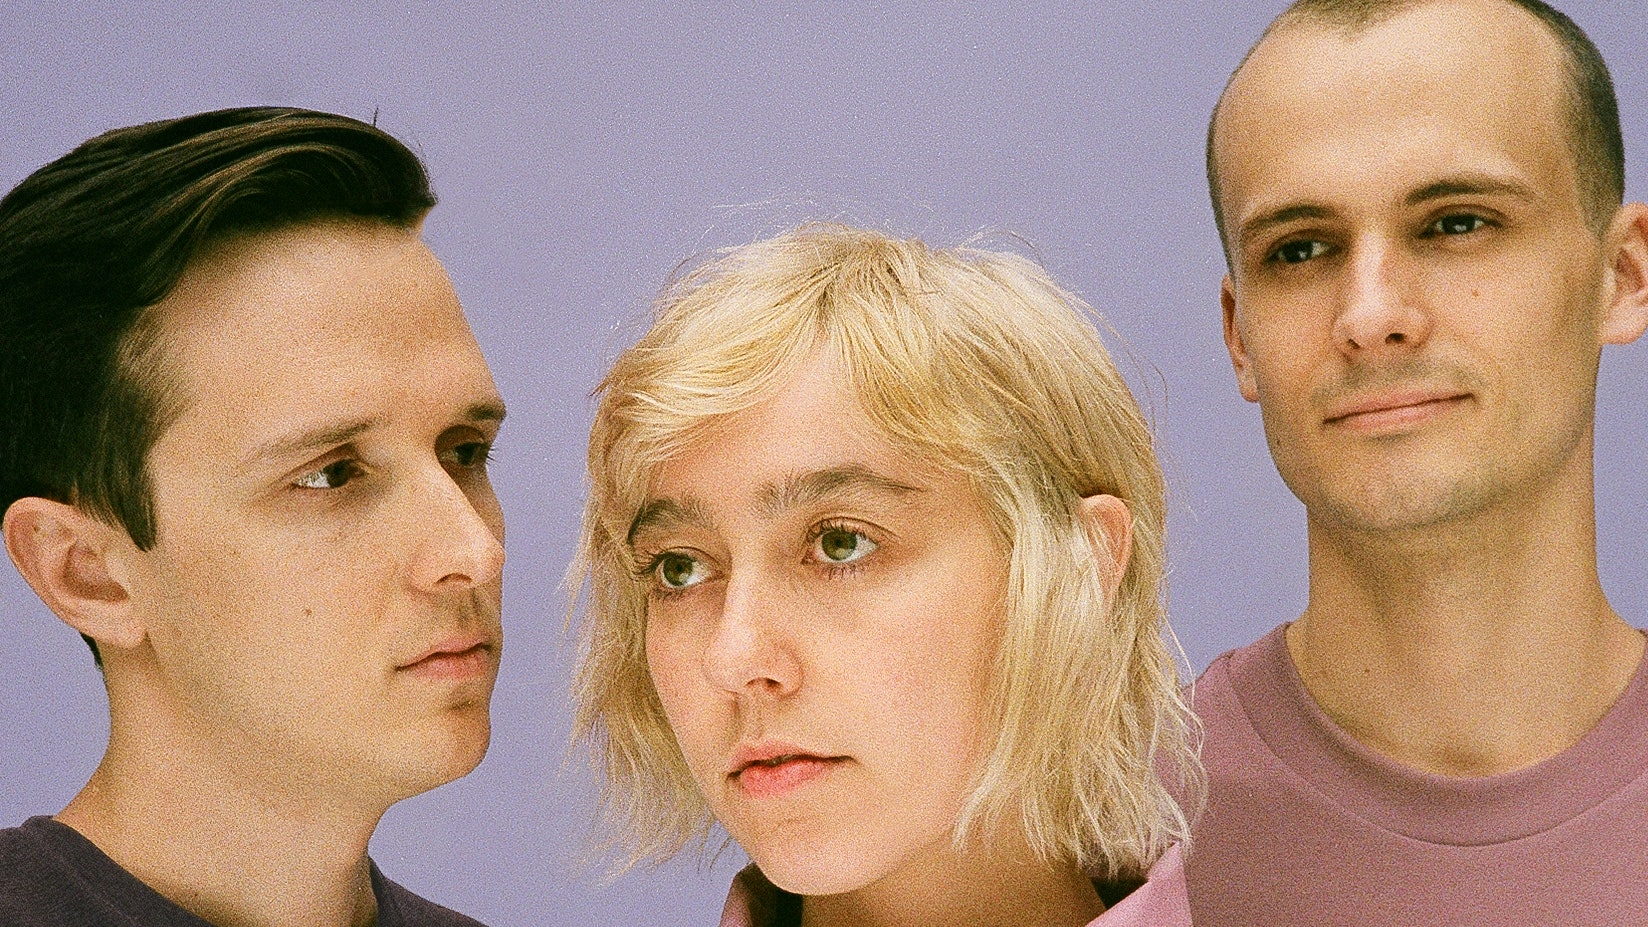 GIG OF THE WEEK // Braids live-stream their WWWorld Tour on July 29th.